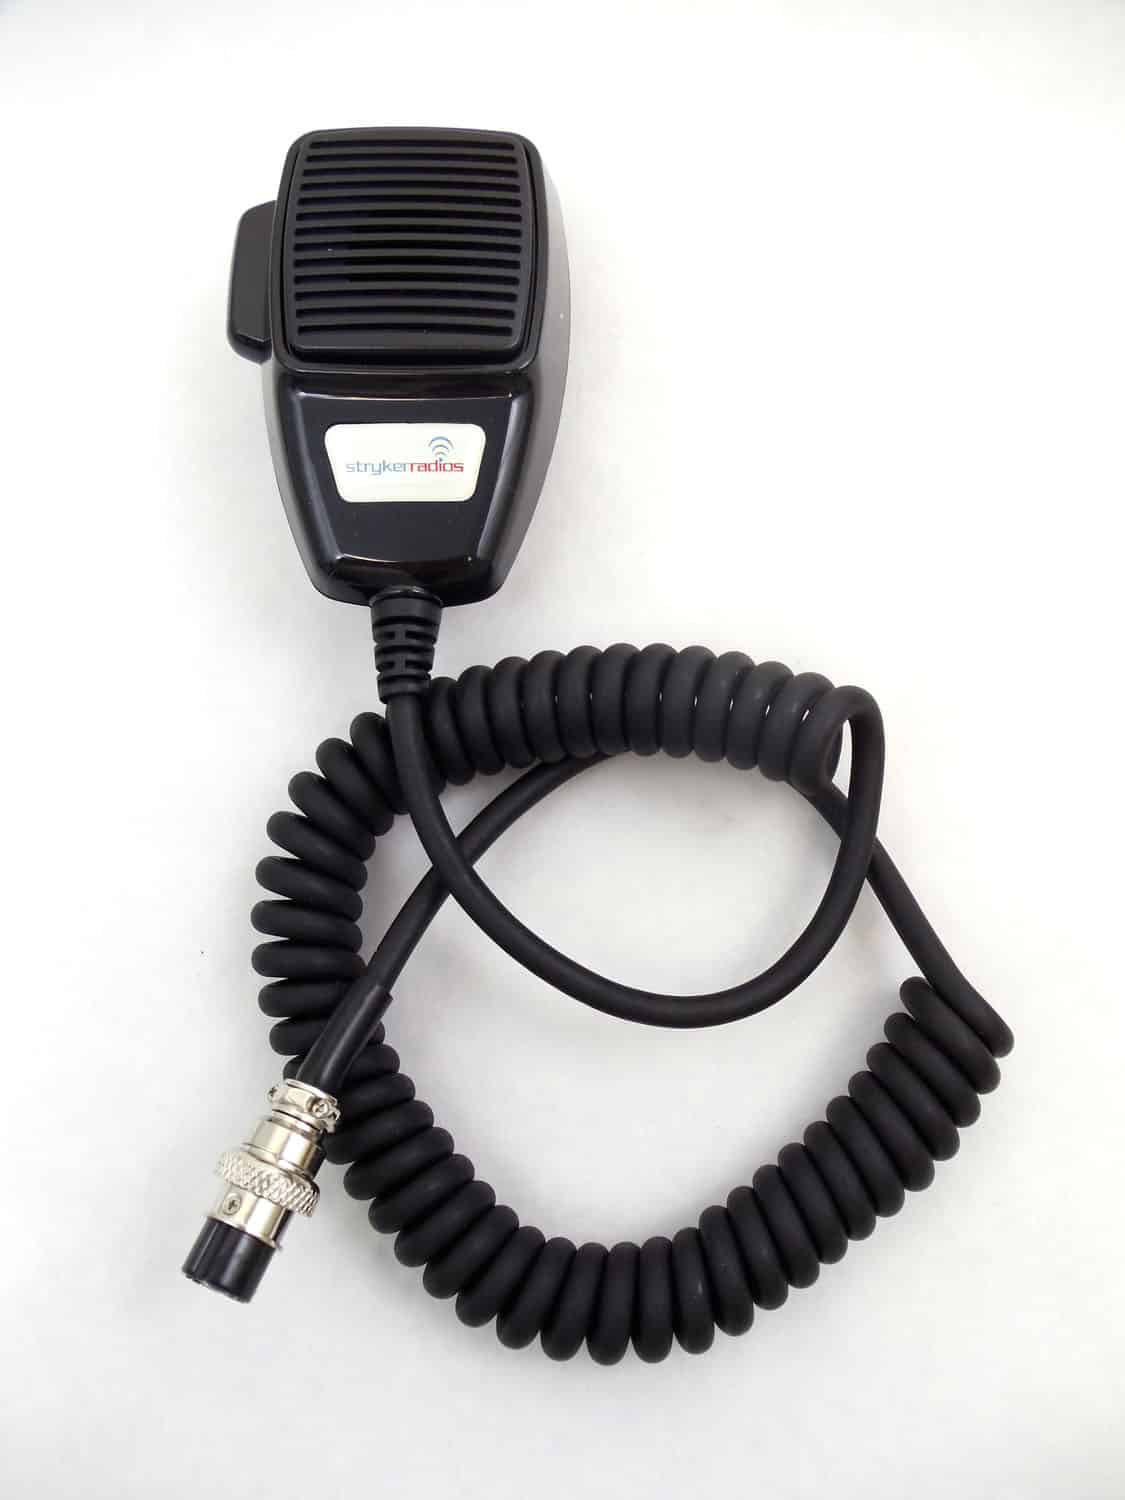 SRM497 - Stryker 4 Pin Replacement Microphone For Sr497Hpc Radio